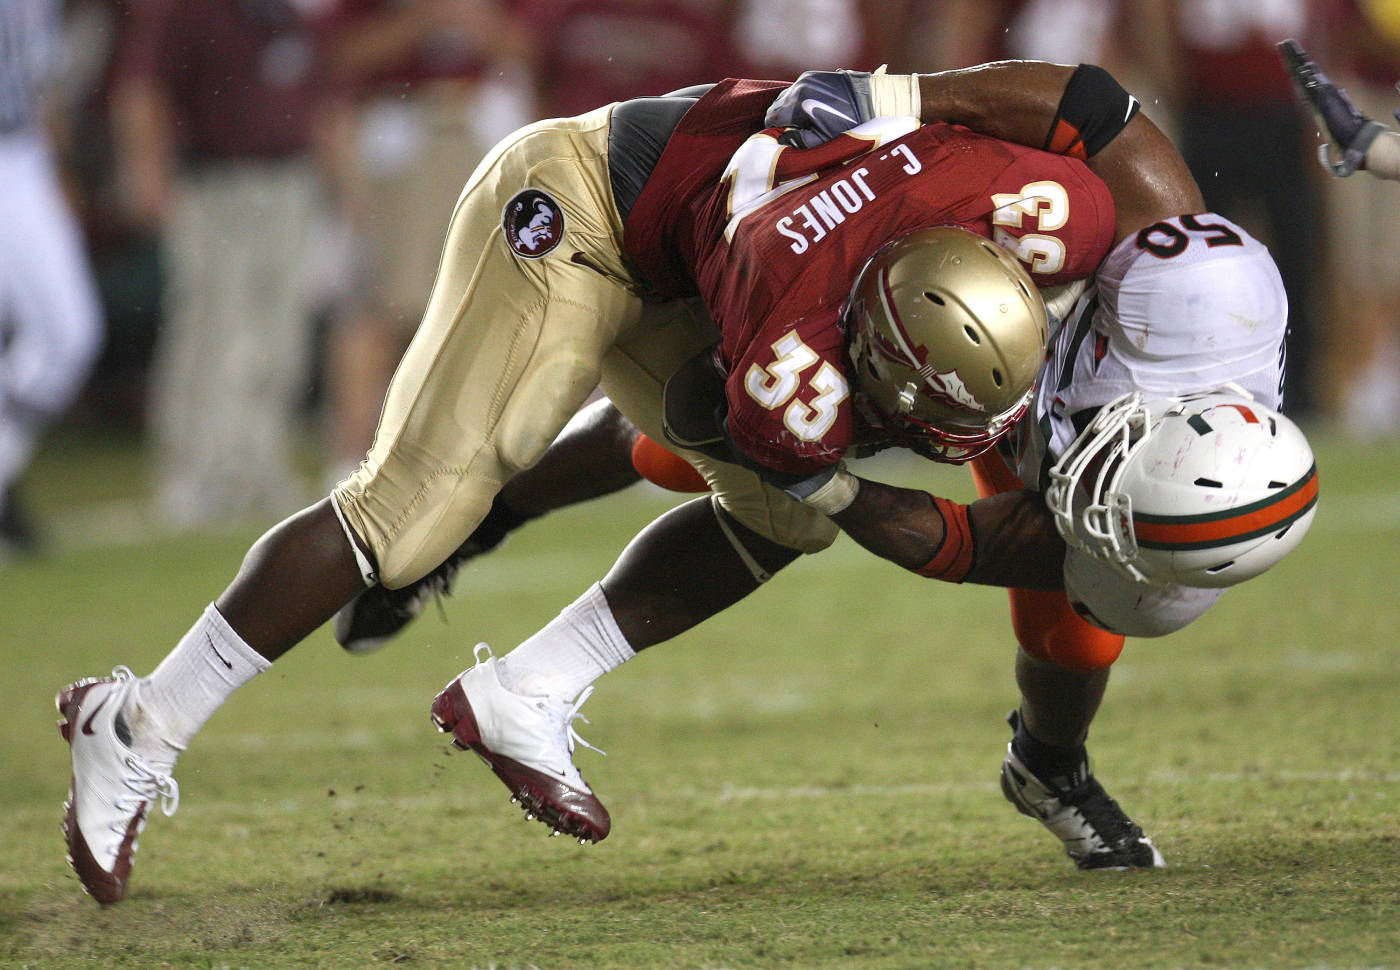 Florida State's Ty Jones is tackled by Miami's Darryl Sharpton on a third-quarter run during an NCAA college football game Monday, Sept. 7, 2009, in Tallahassee, Fla. (AP Photo/Phil Coale)